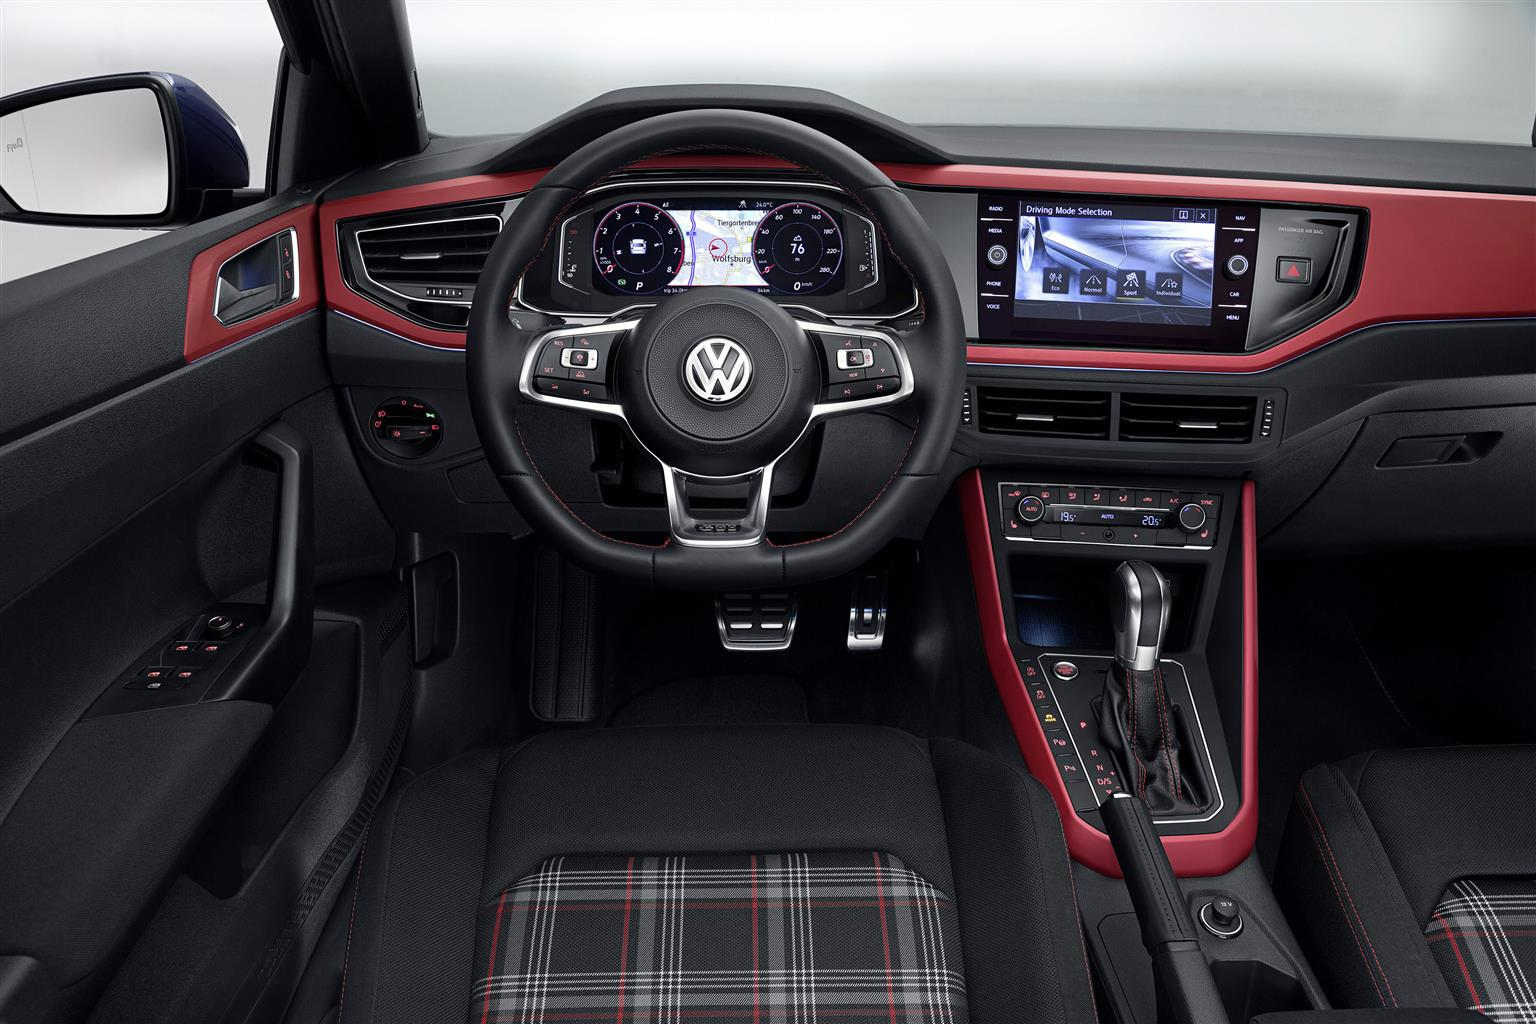 nuova volkswagen polo gti 2018 icona dall indole sportiva. Black Bedroom Furniture Sets. Home Design Ideas